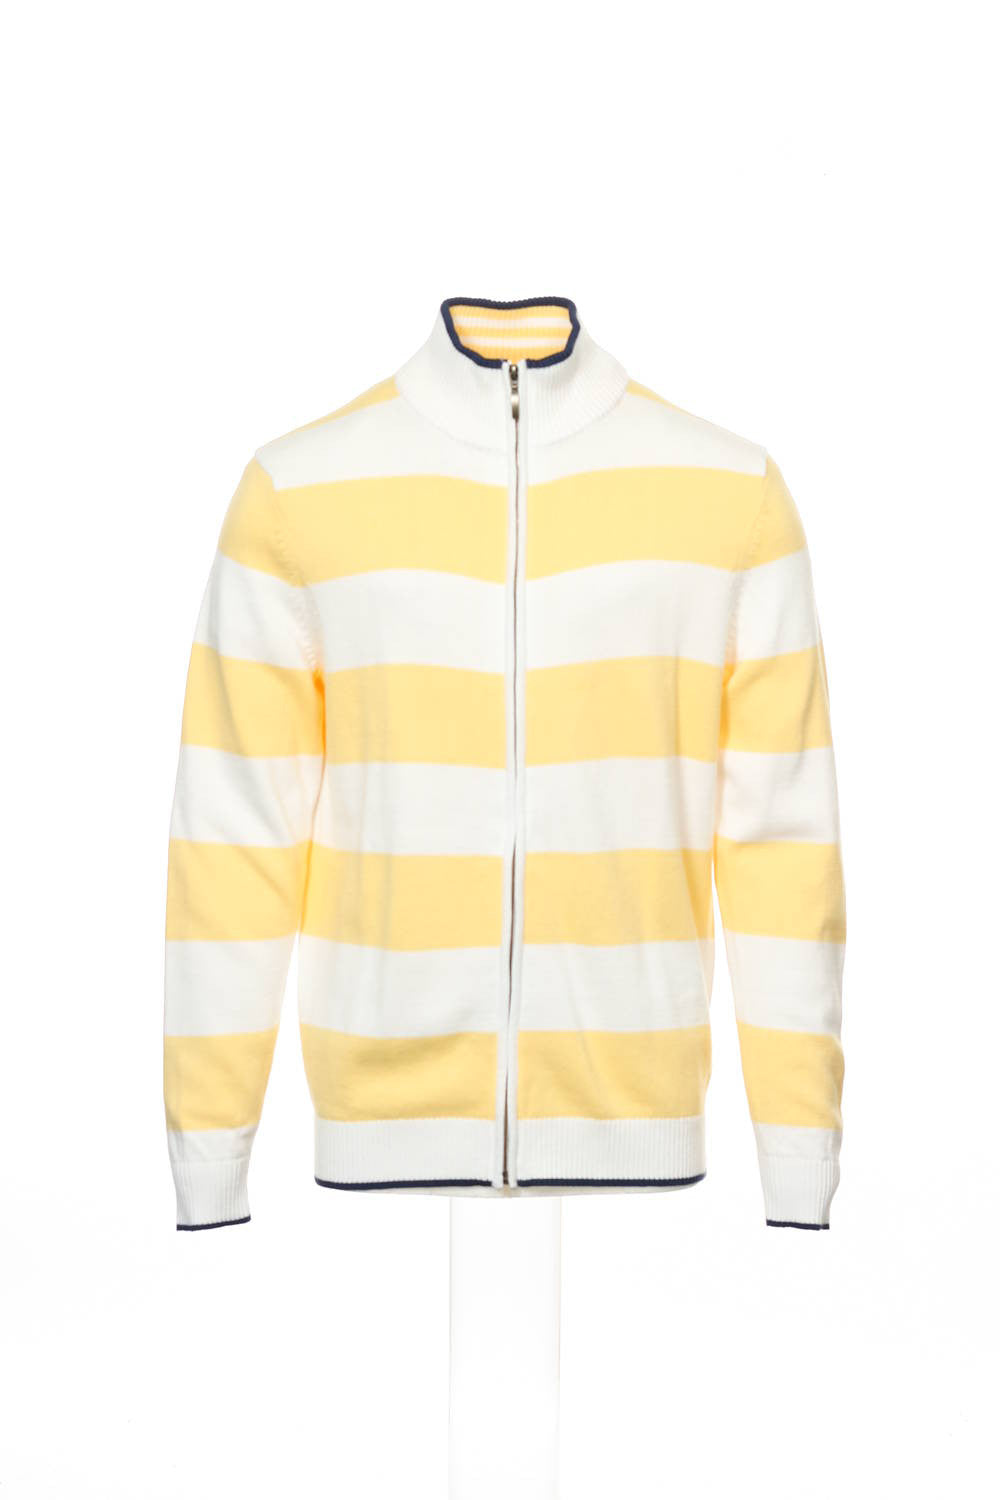 Club Room Mens Yellow Wide Striped Full Zip Sweater